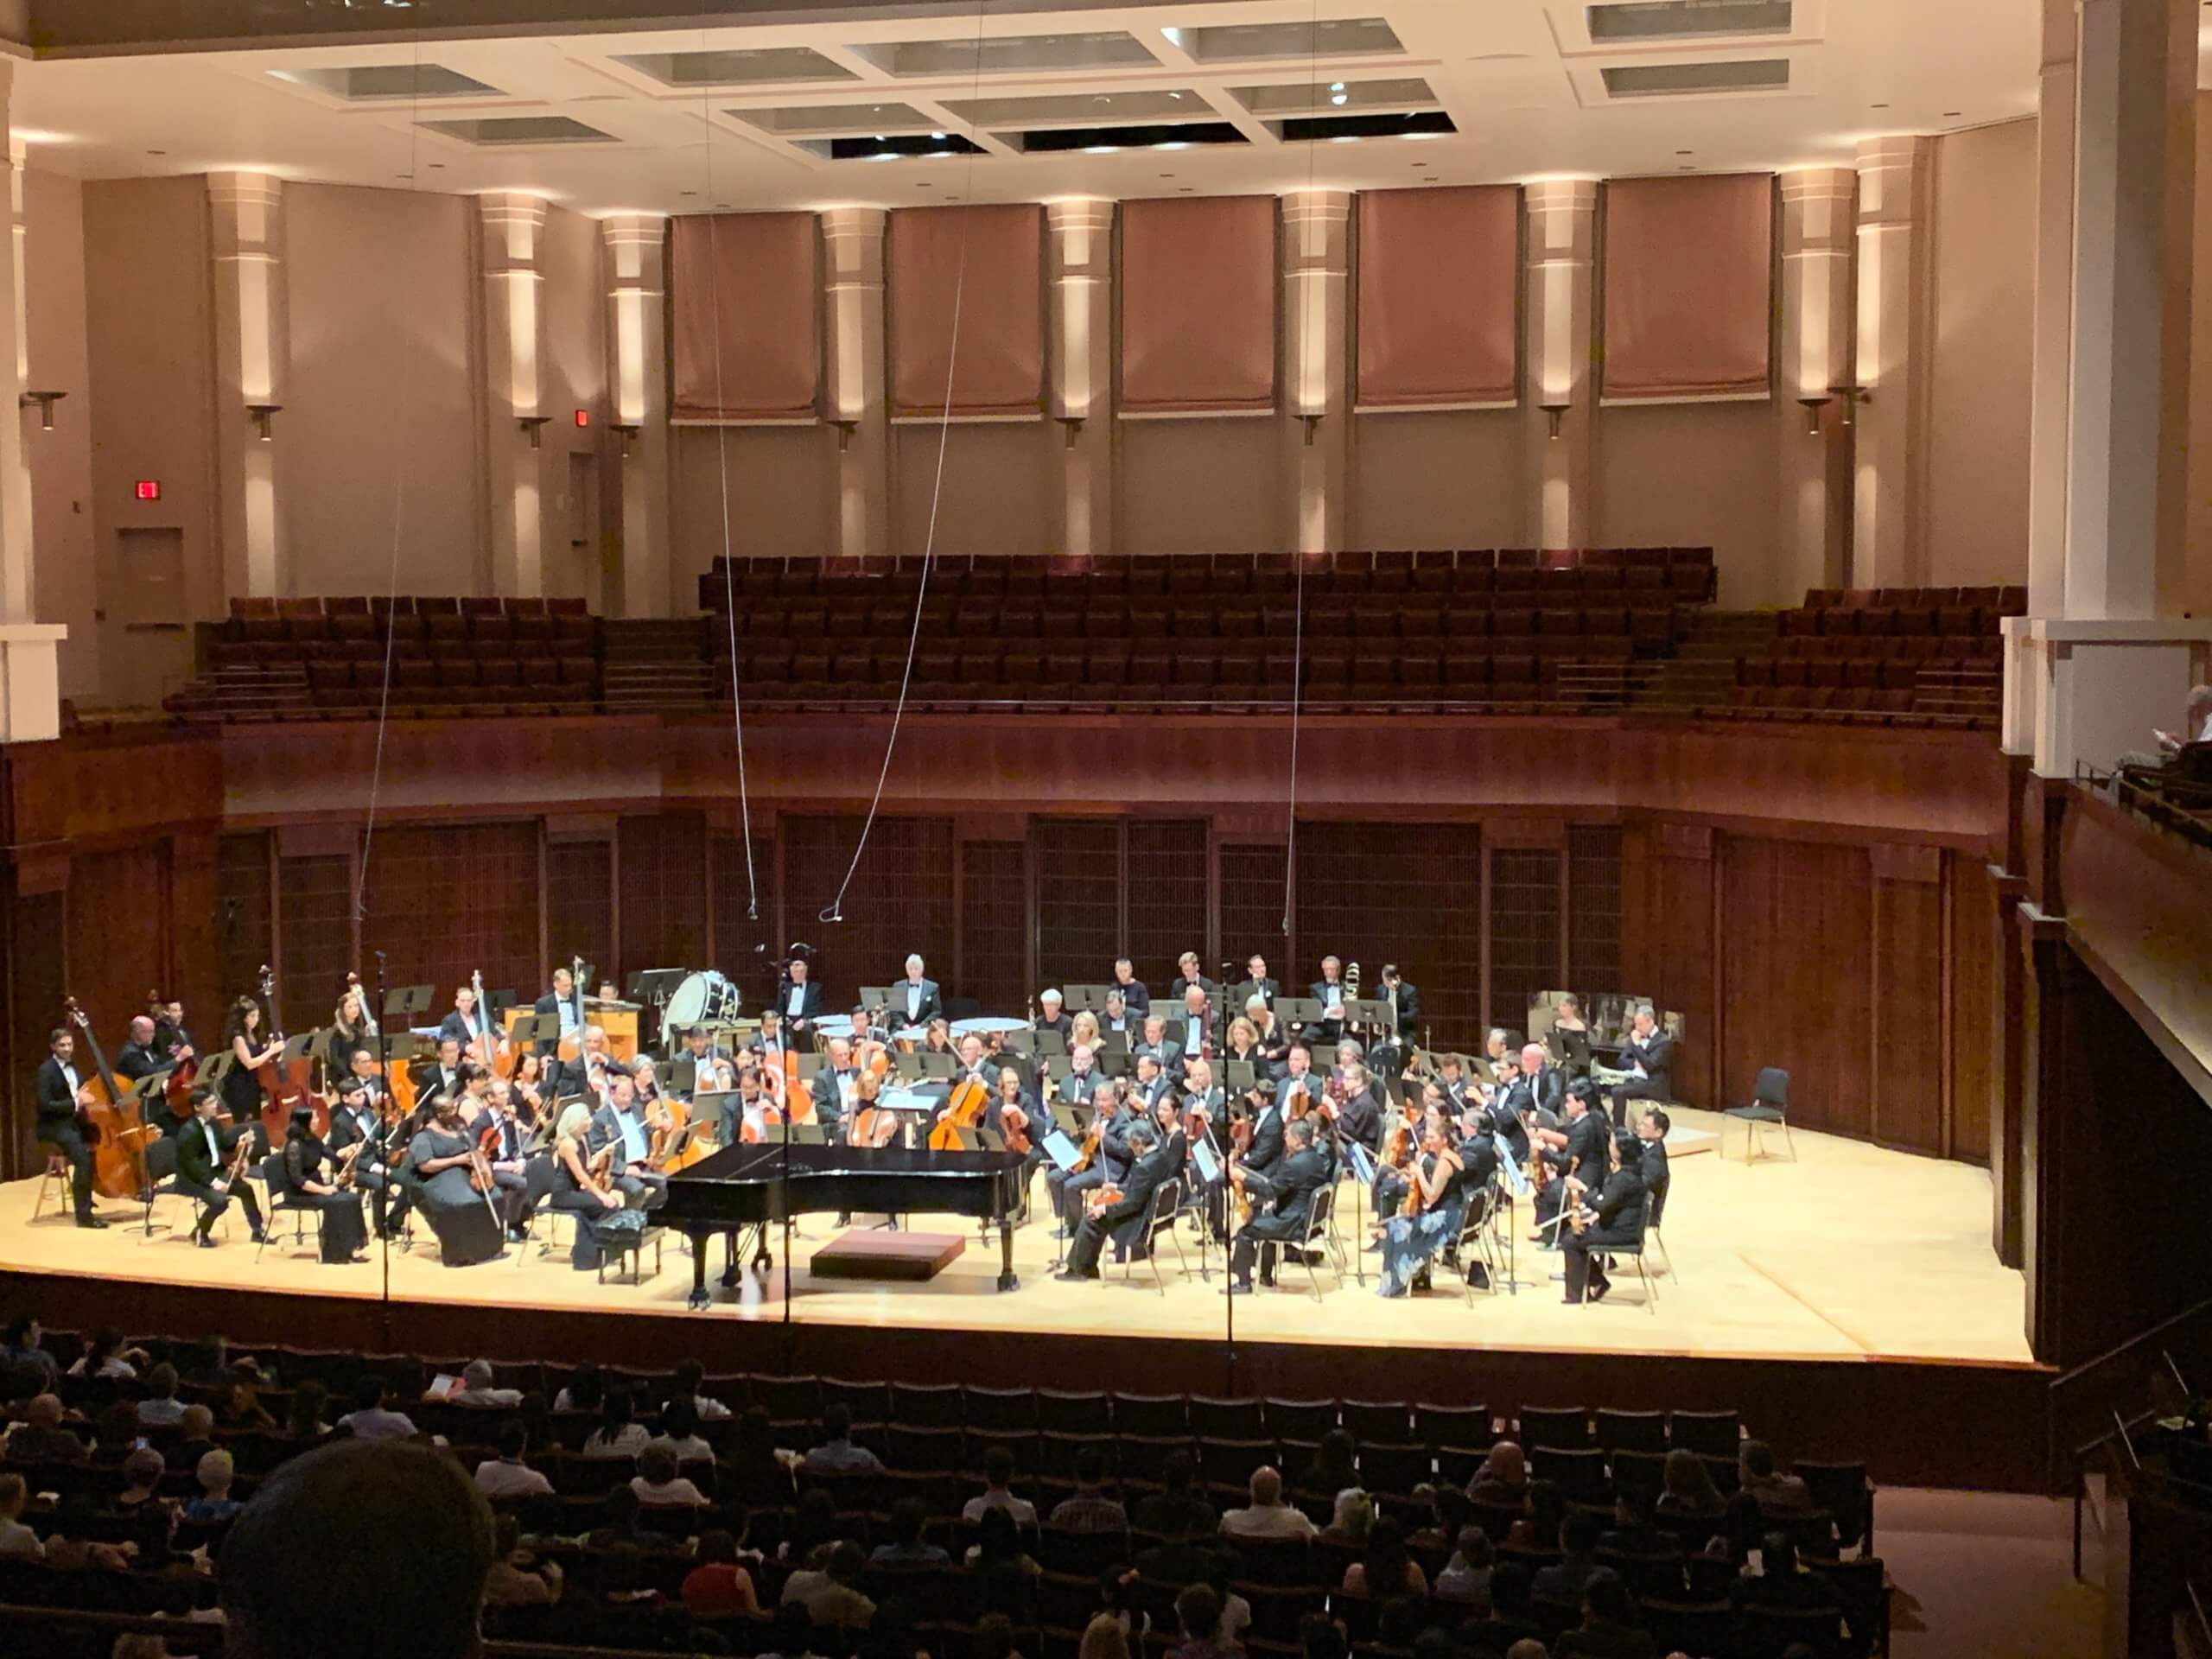 The World Doctors Orchestra took the stage at Stude Music Hall at Rice University.